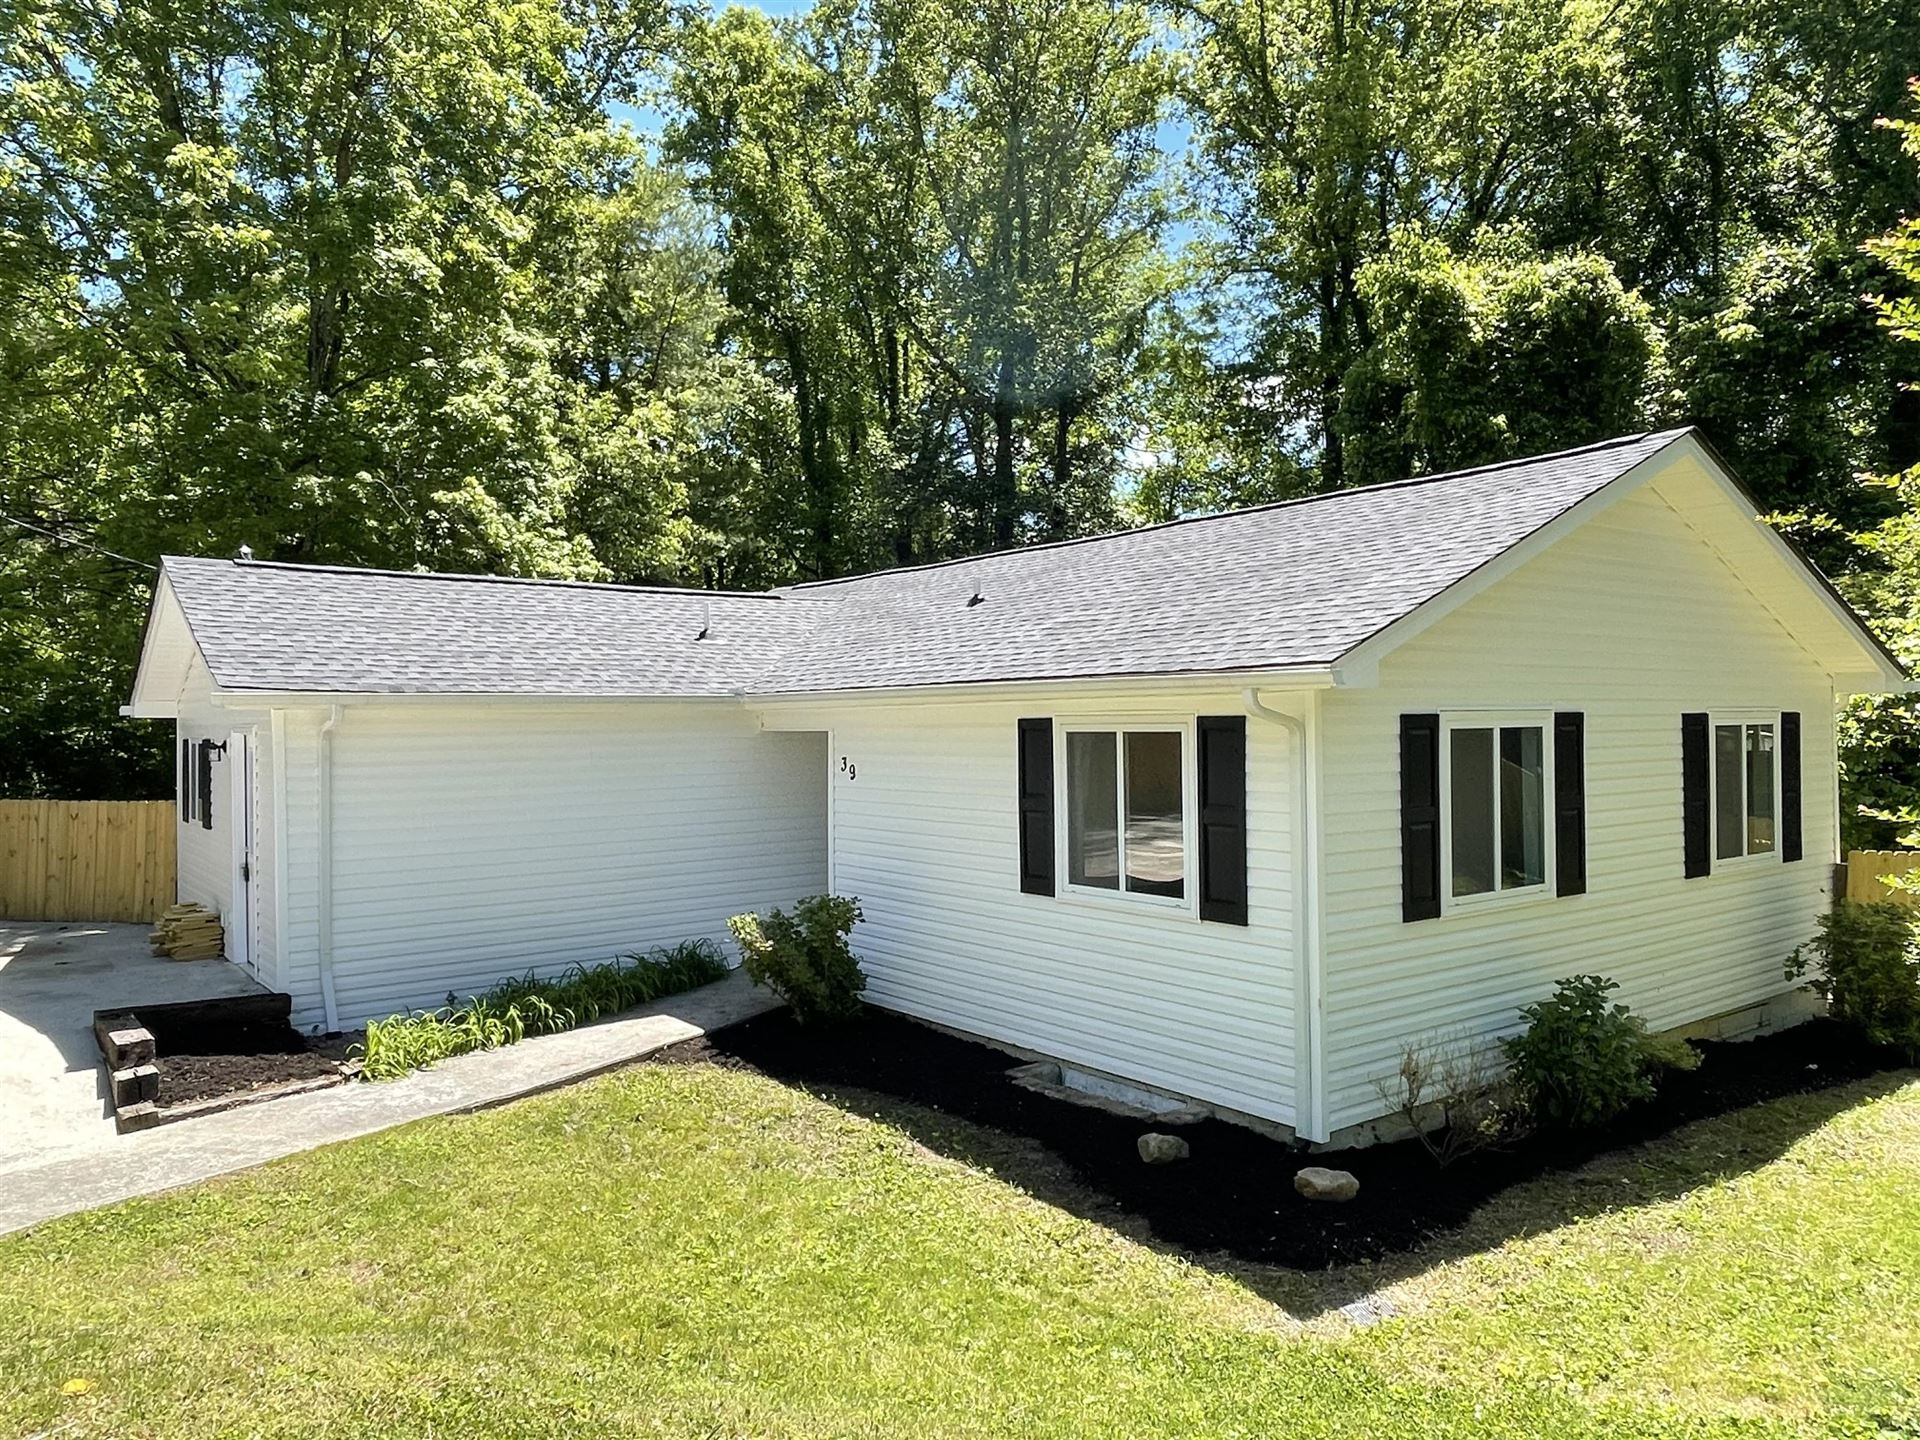 Photo of 39 Outer Drive, Oak Ridge, TN 37830 (MLS # 1152629)